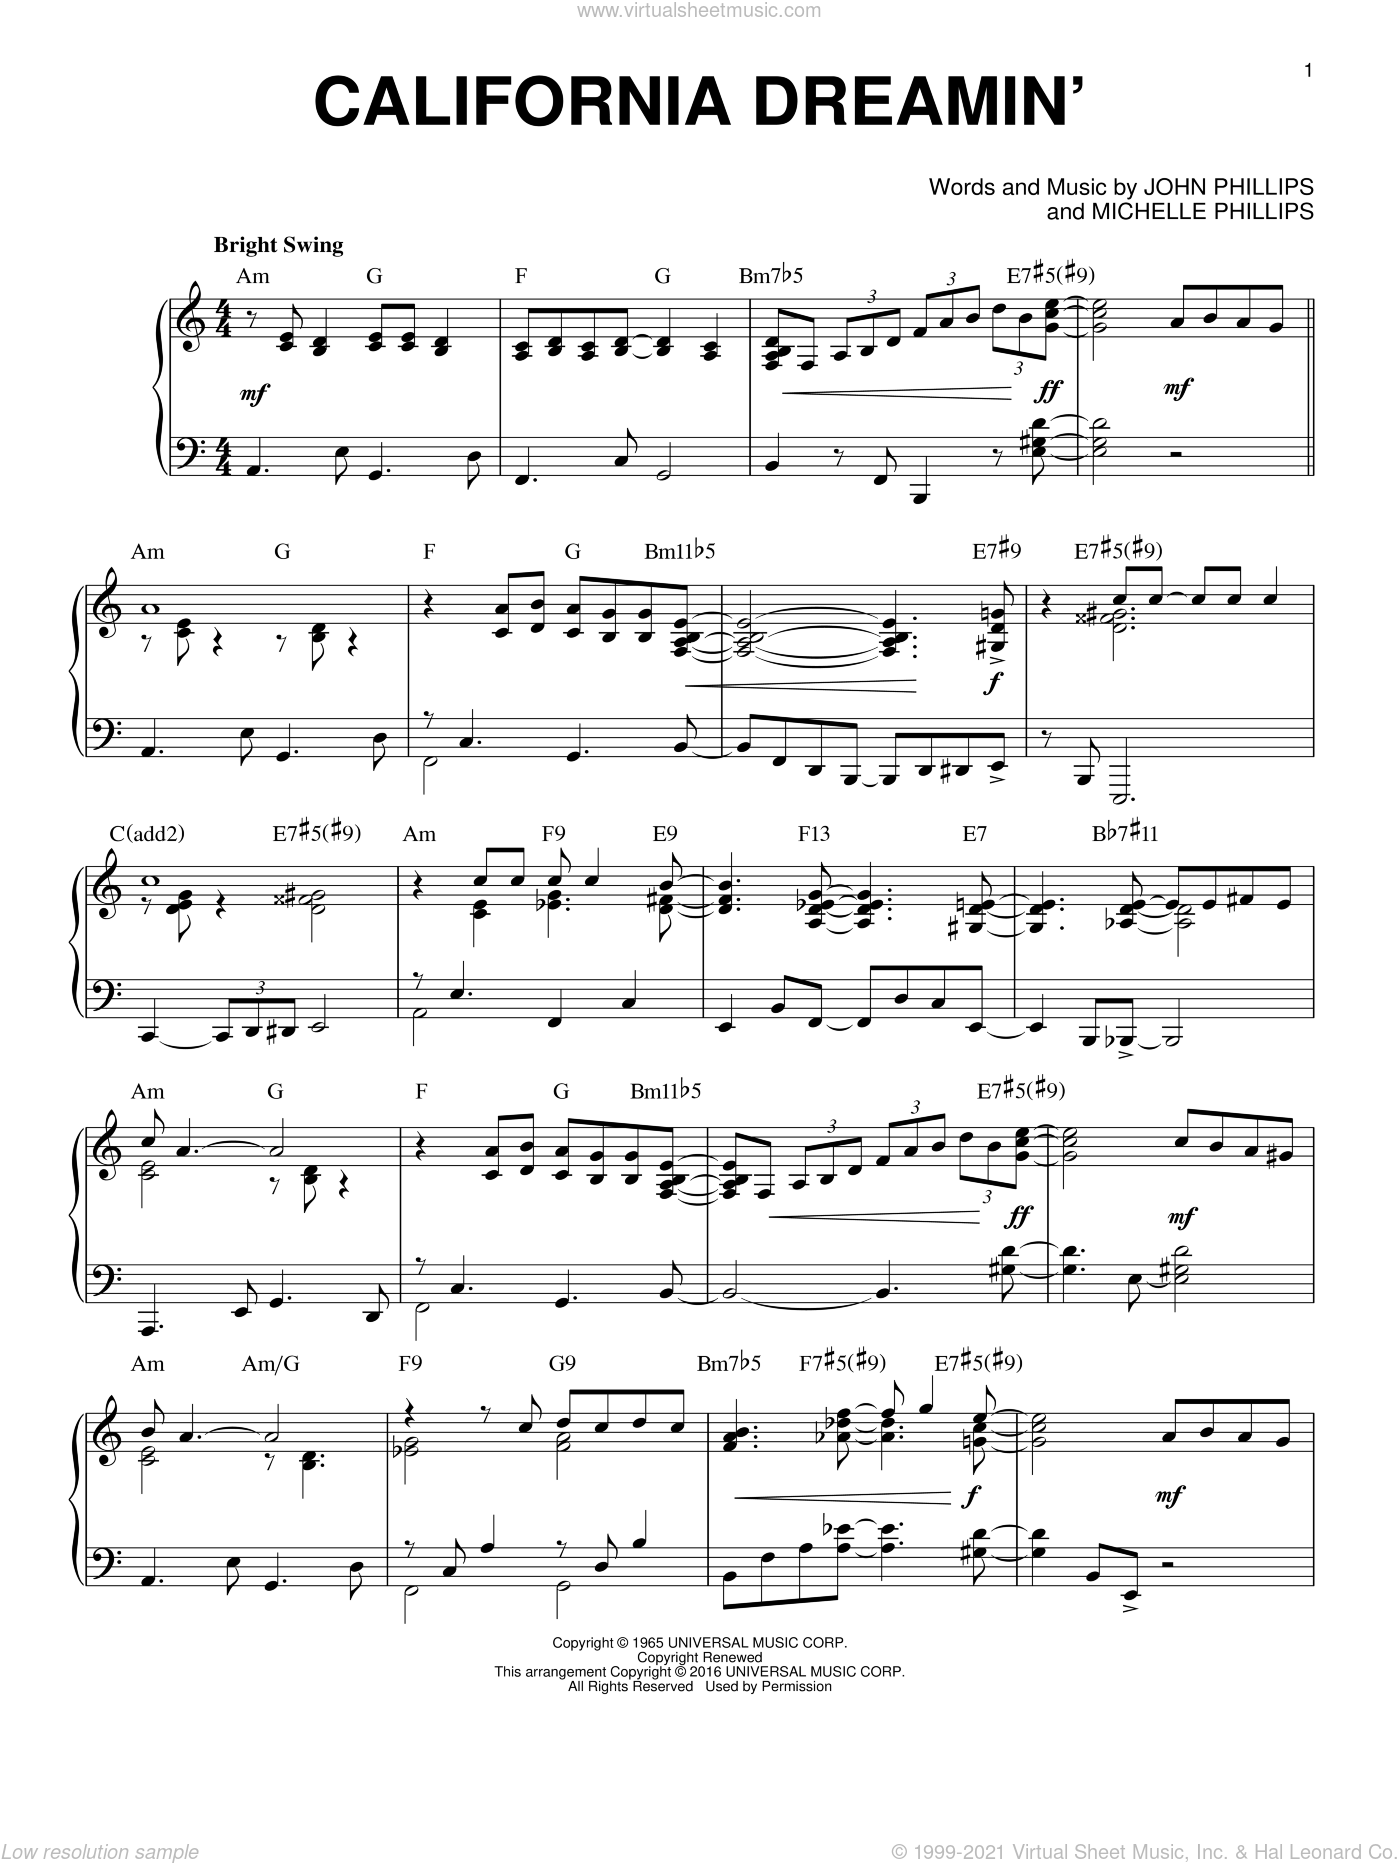 California Dreamin' [Jazz version] (arr. Brent Edstrom) sheet music for piano solo by The Mamas & The Papas, John Phillips and Michelle Phillips, intermediate skill level